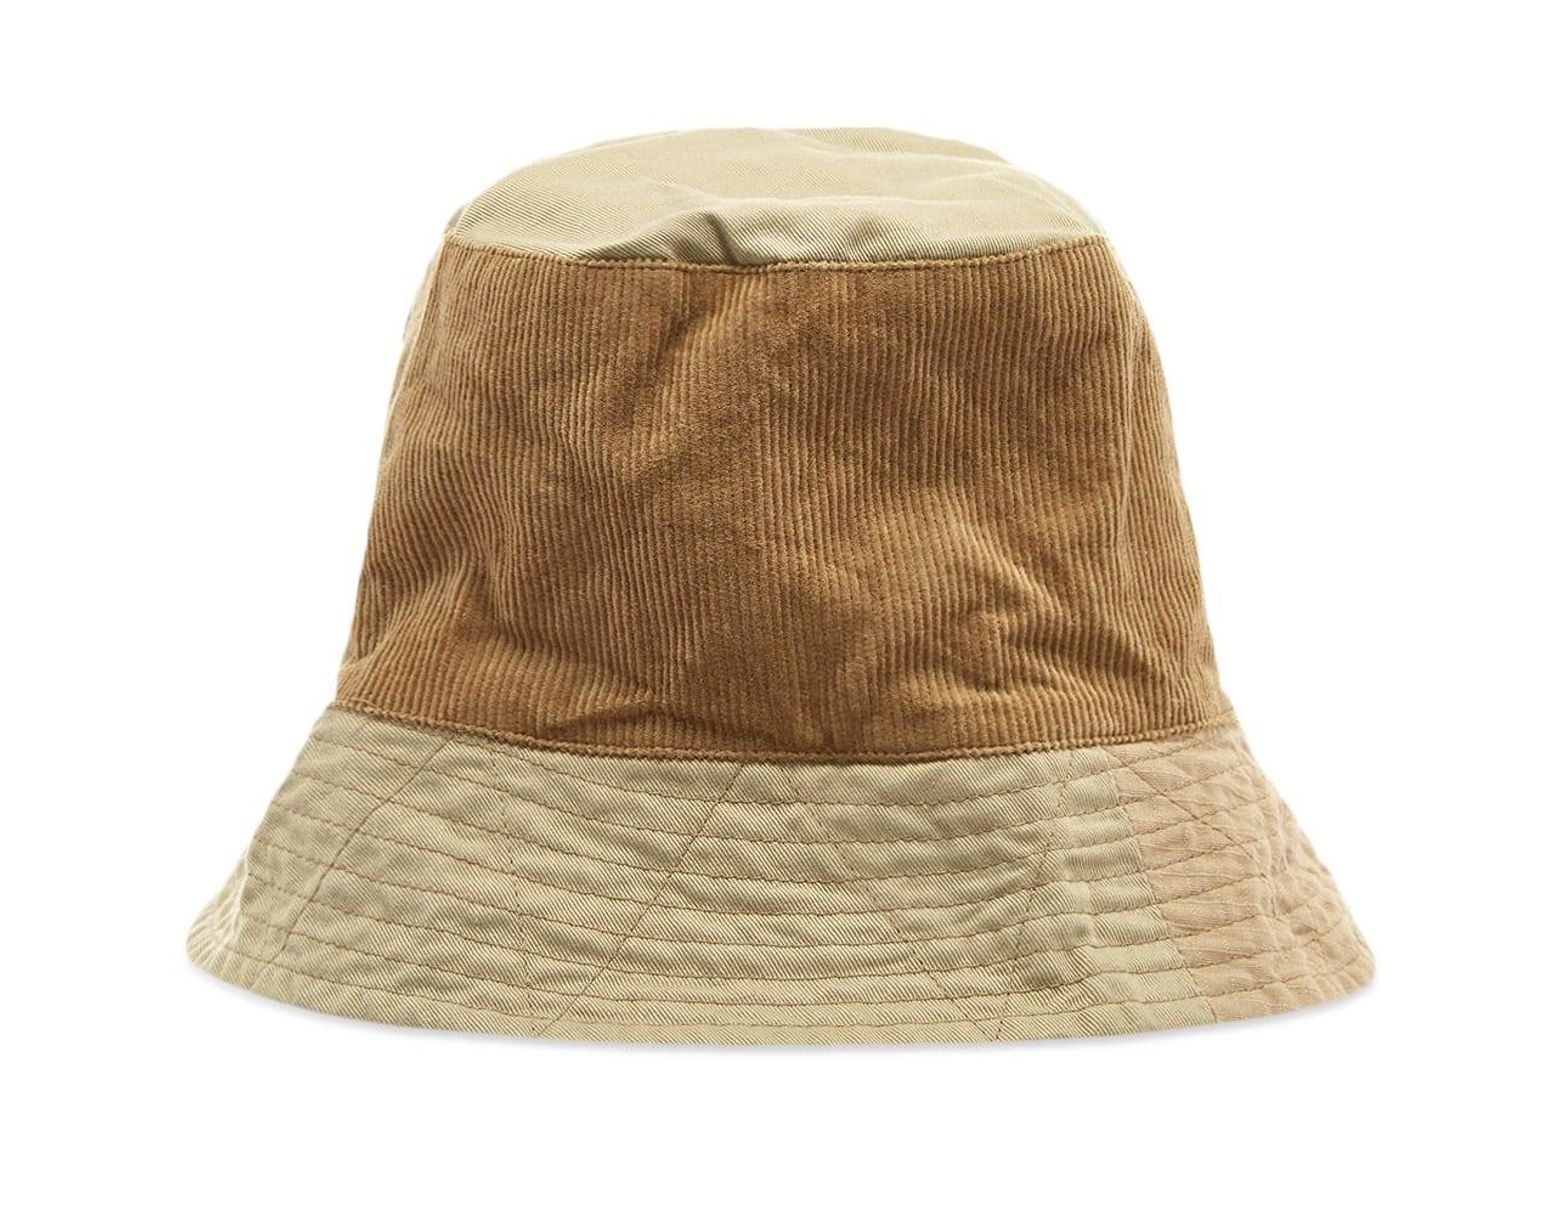 f8bf345e025e61 Engineered Garments Mix Bucket Hat in Natural for Men - Lyst